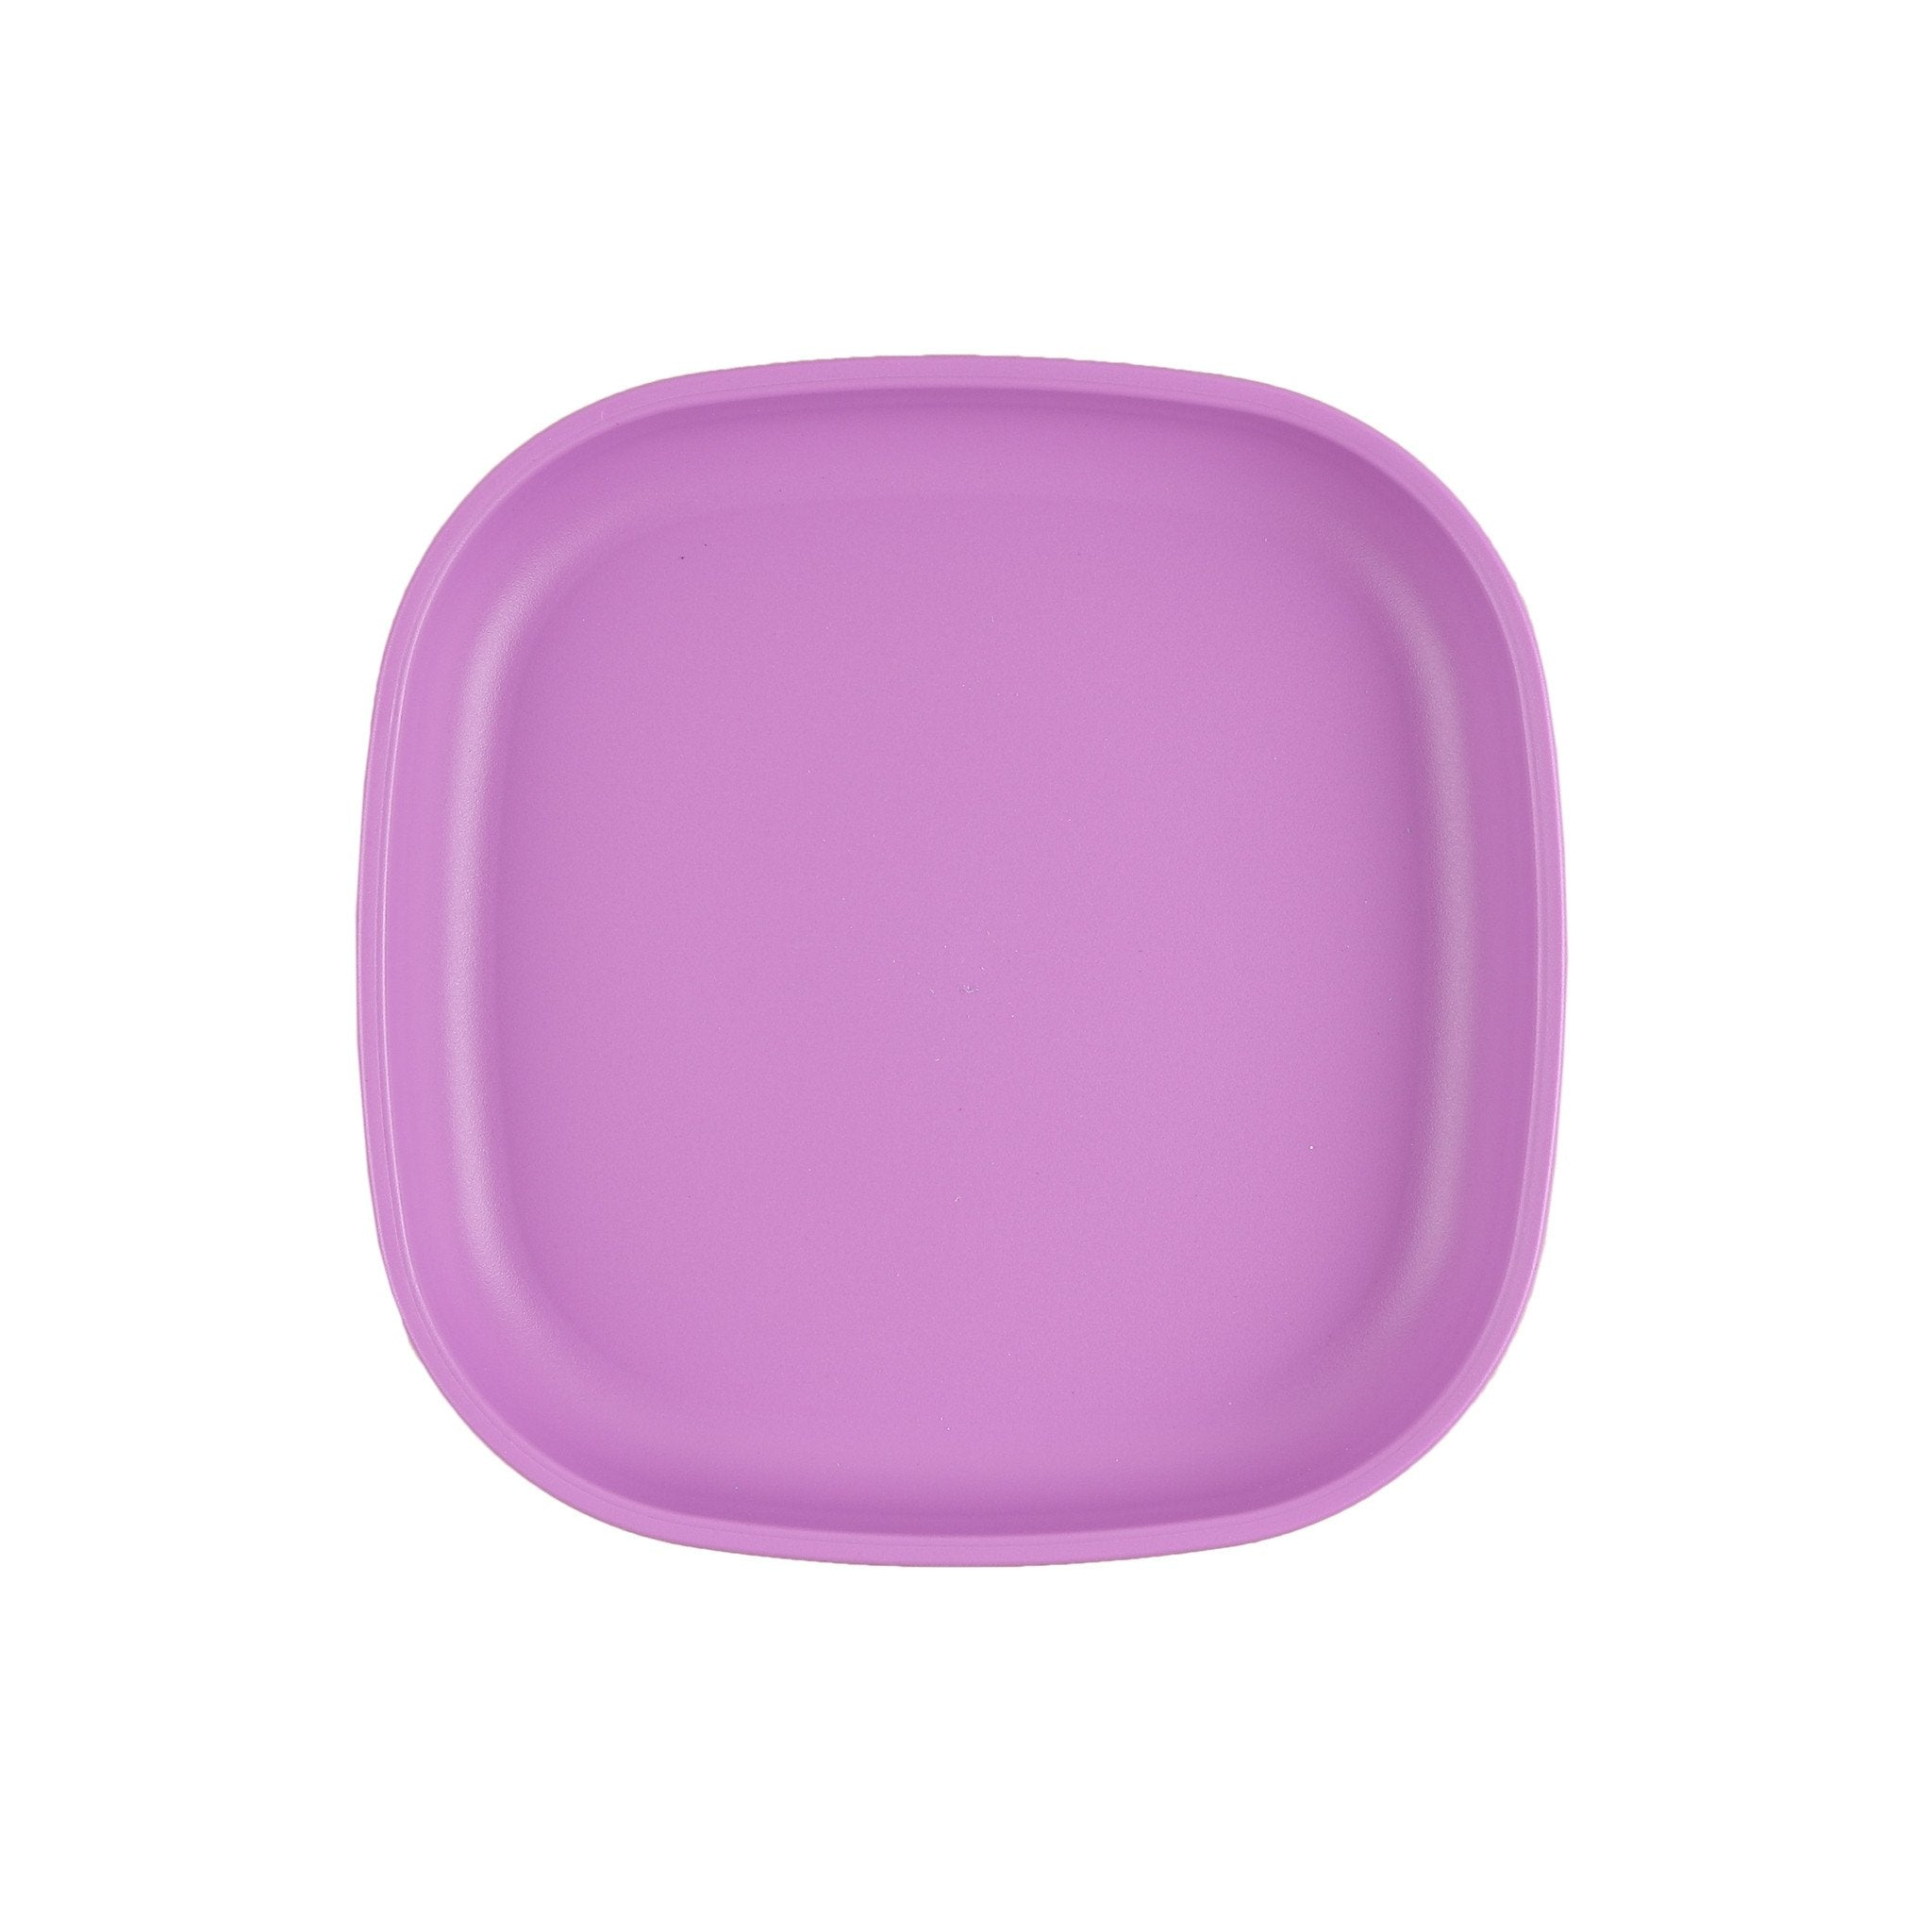 Replay Large Plate Replay Dinnerware Purple at Little Earth Nest Eco Shop